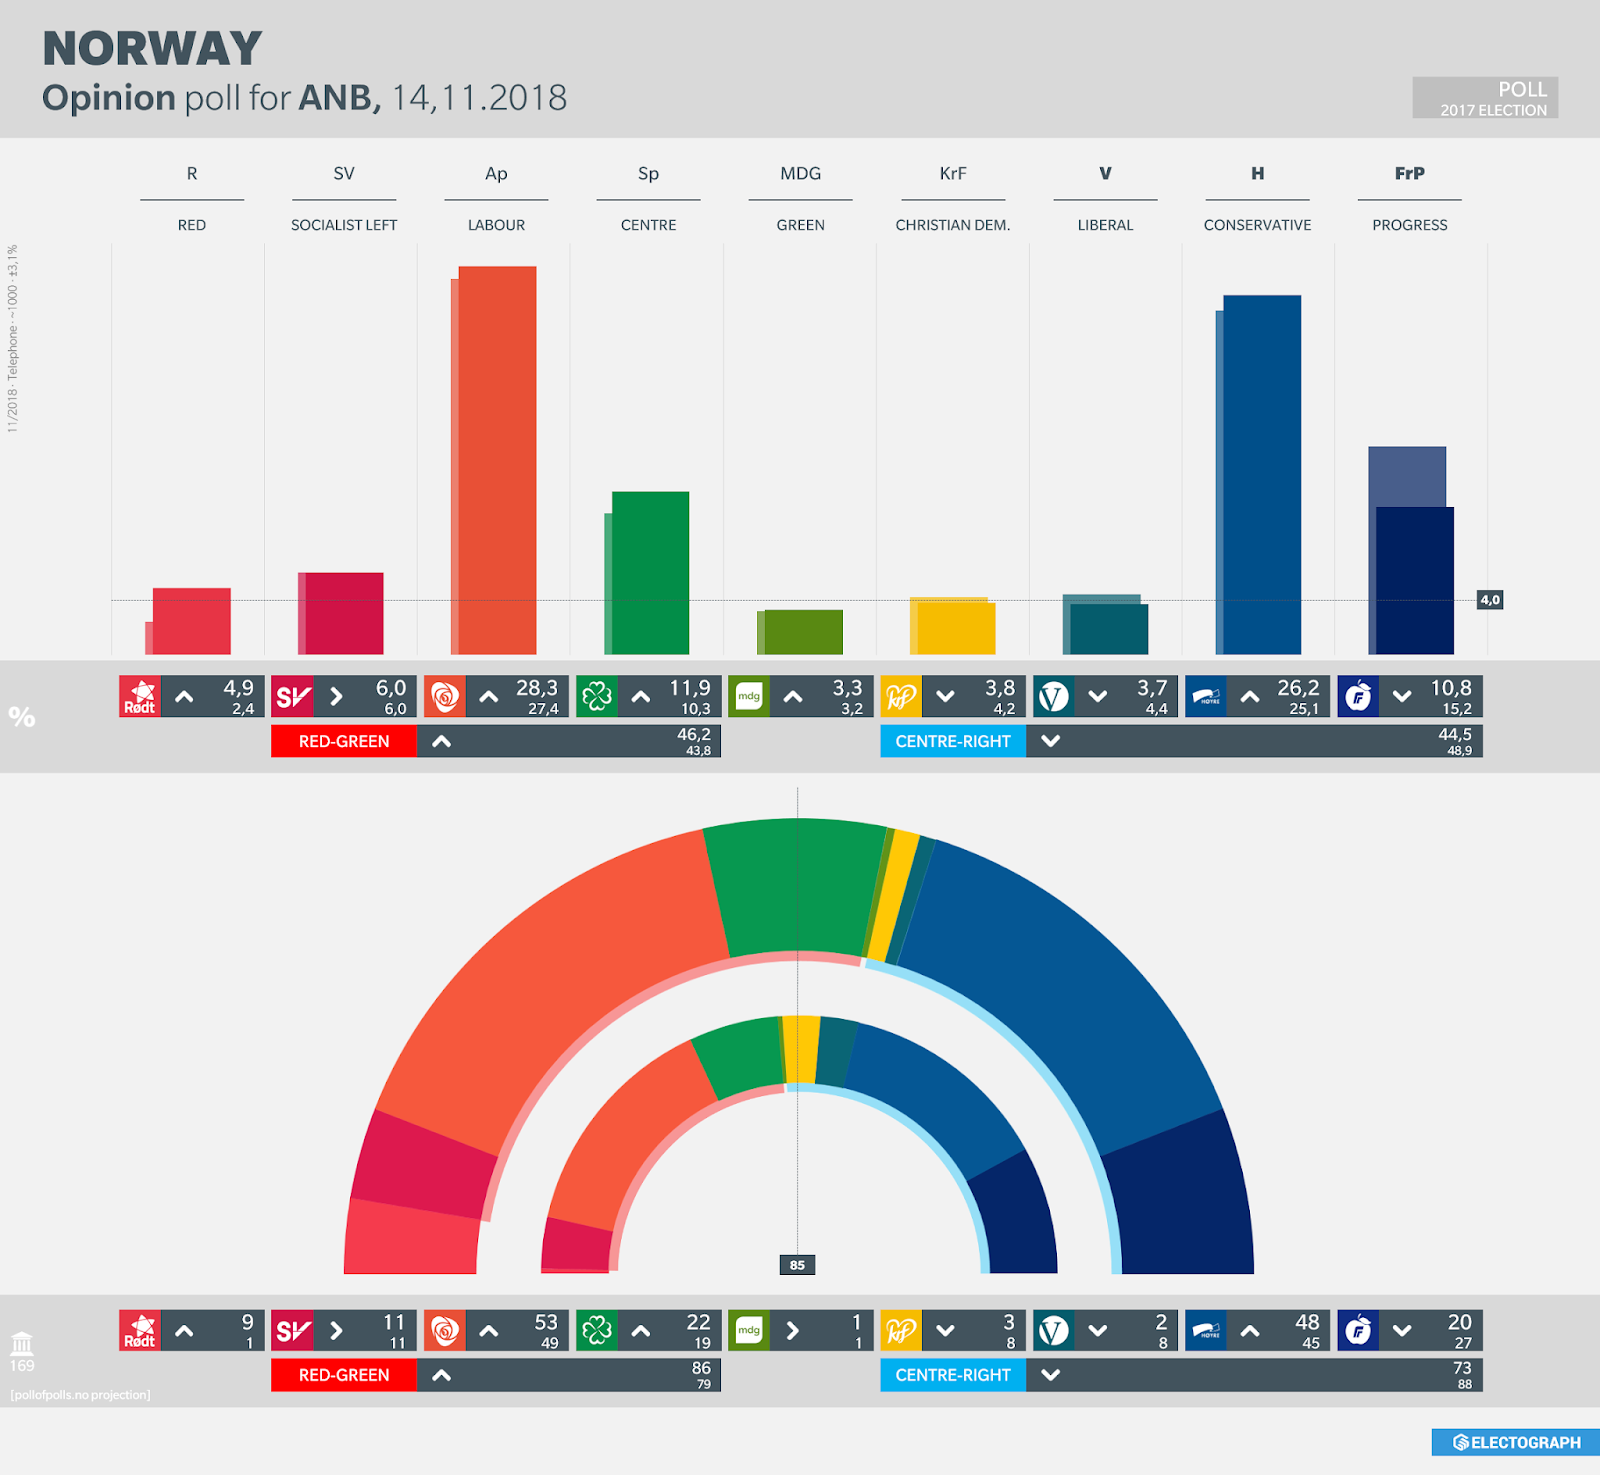 NORWAY: Opinion poll chart for ANB, November 2018